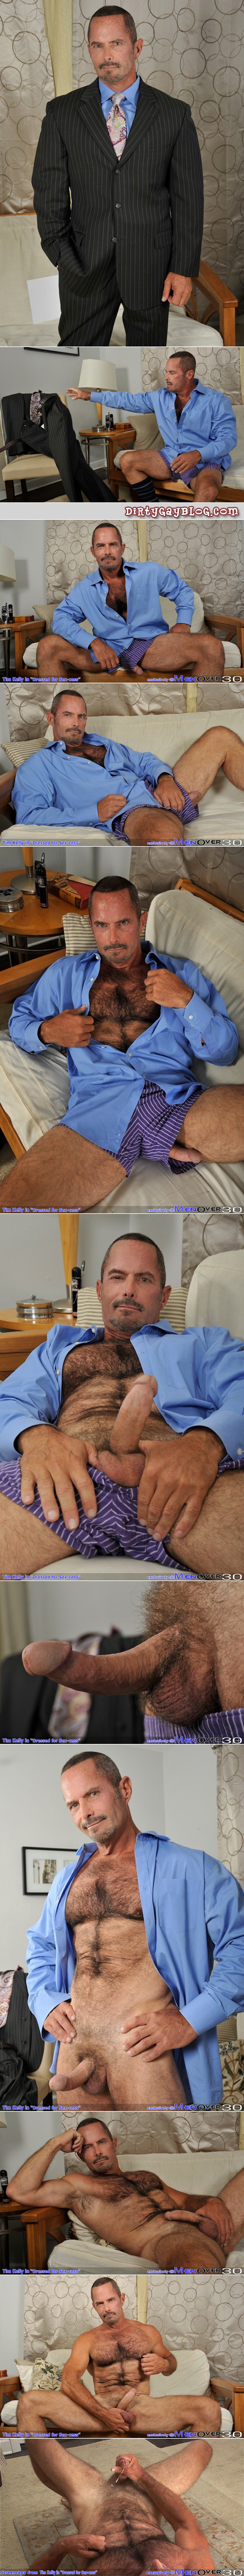 Hairy older man in a suit with his cock hanging out of his boxer shorts jerking off shoots a load of cum on his furry stomach.